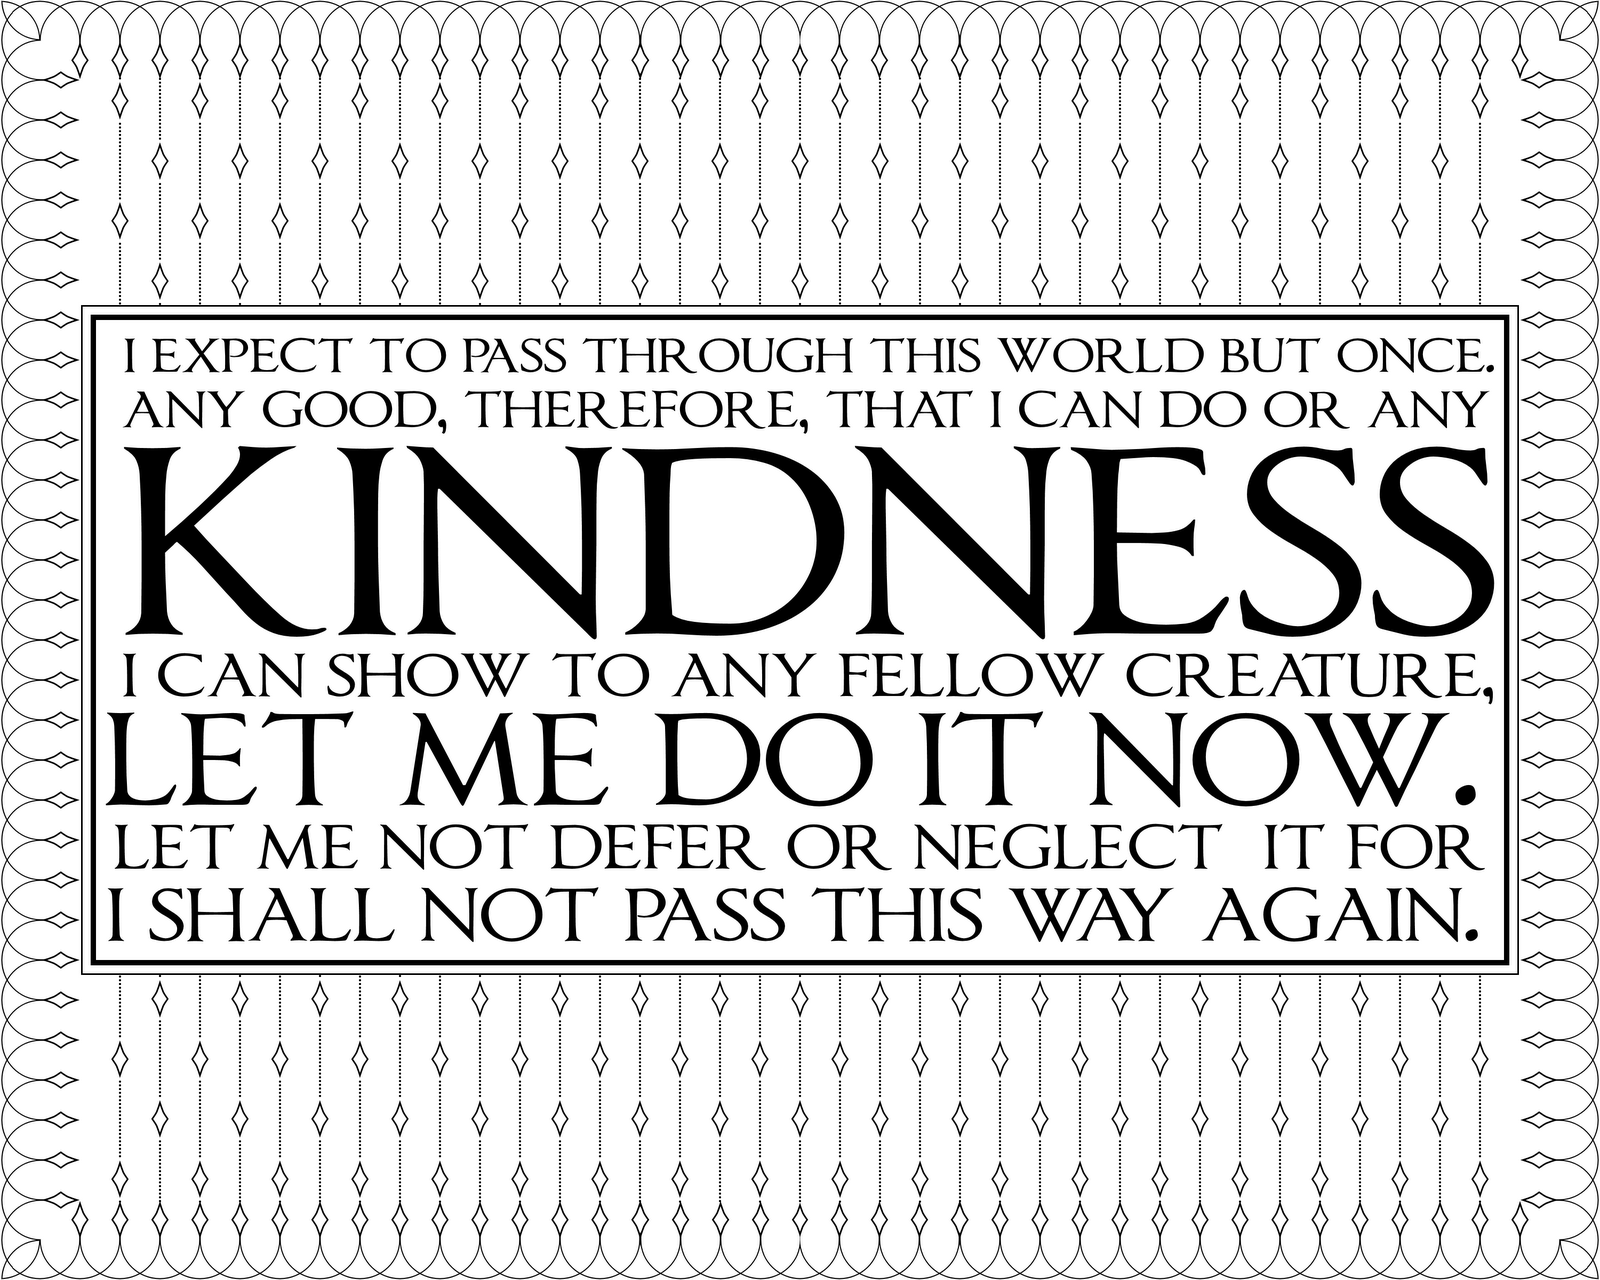 Simple Acts Of Kindness Are The Seeds We Plant To Change World